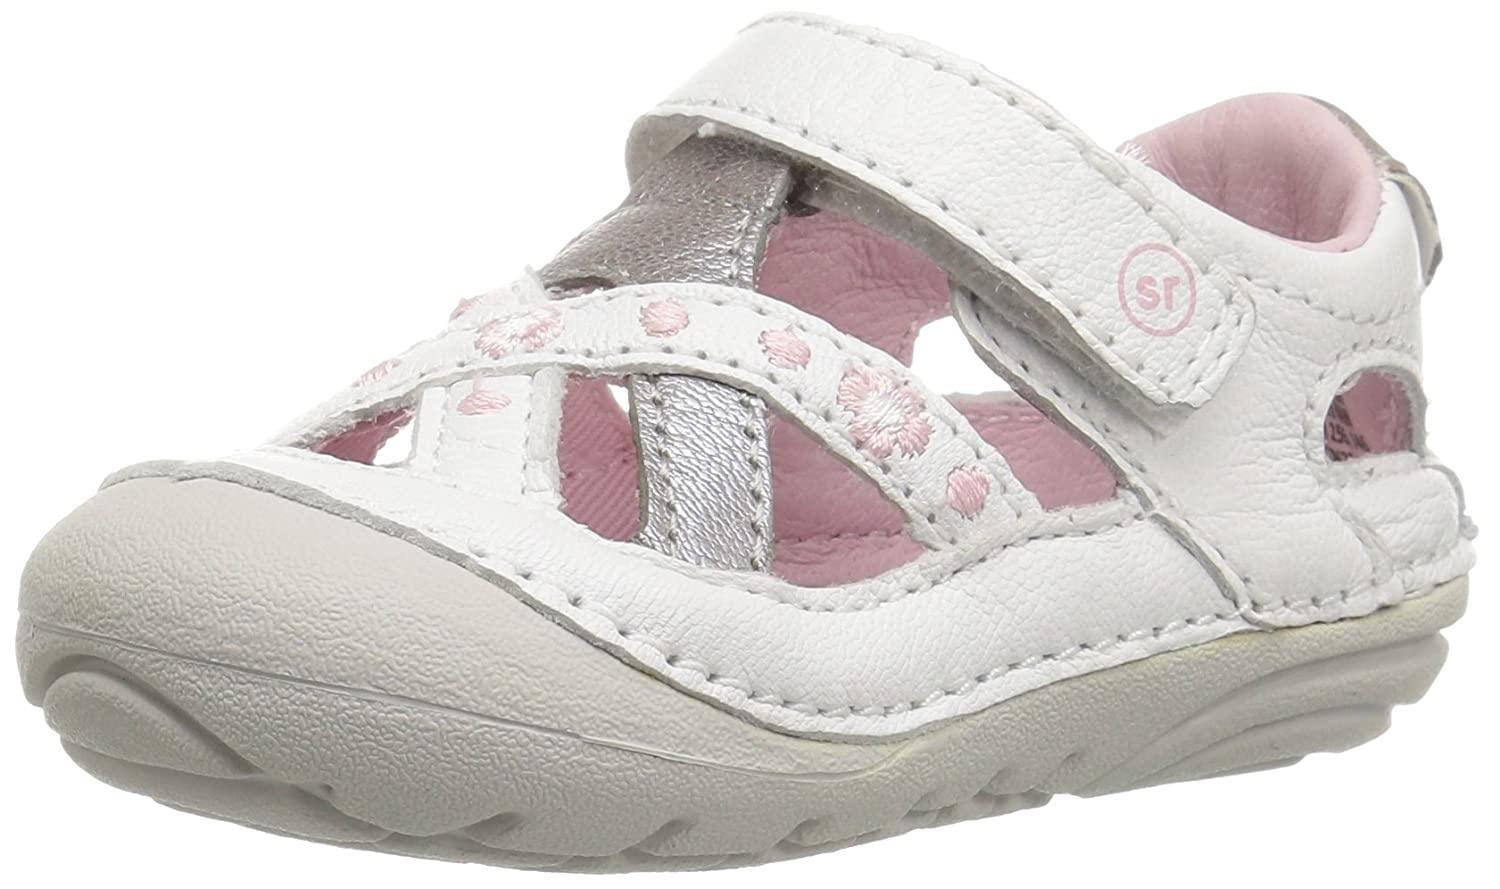 Stride Rite Soft Motion Kiki Fisherman Sandal (Infant/Toddler) SM Kiki - K